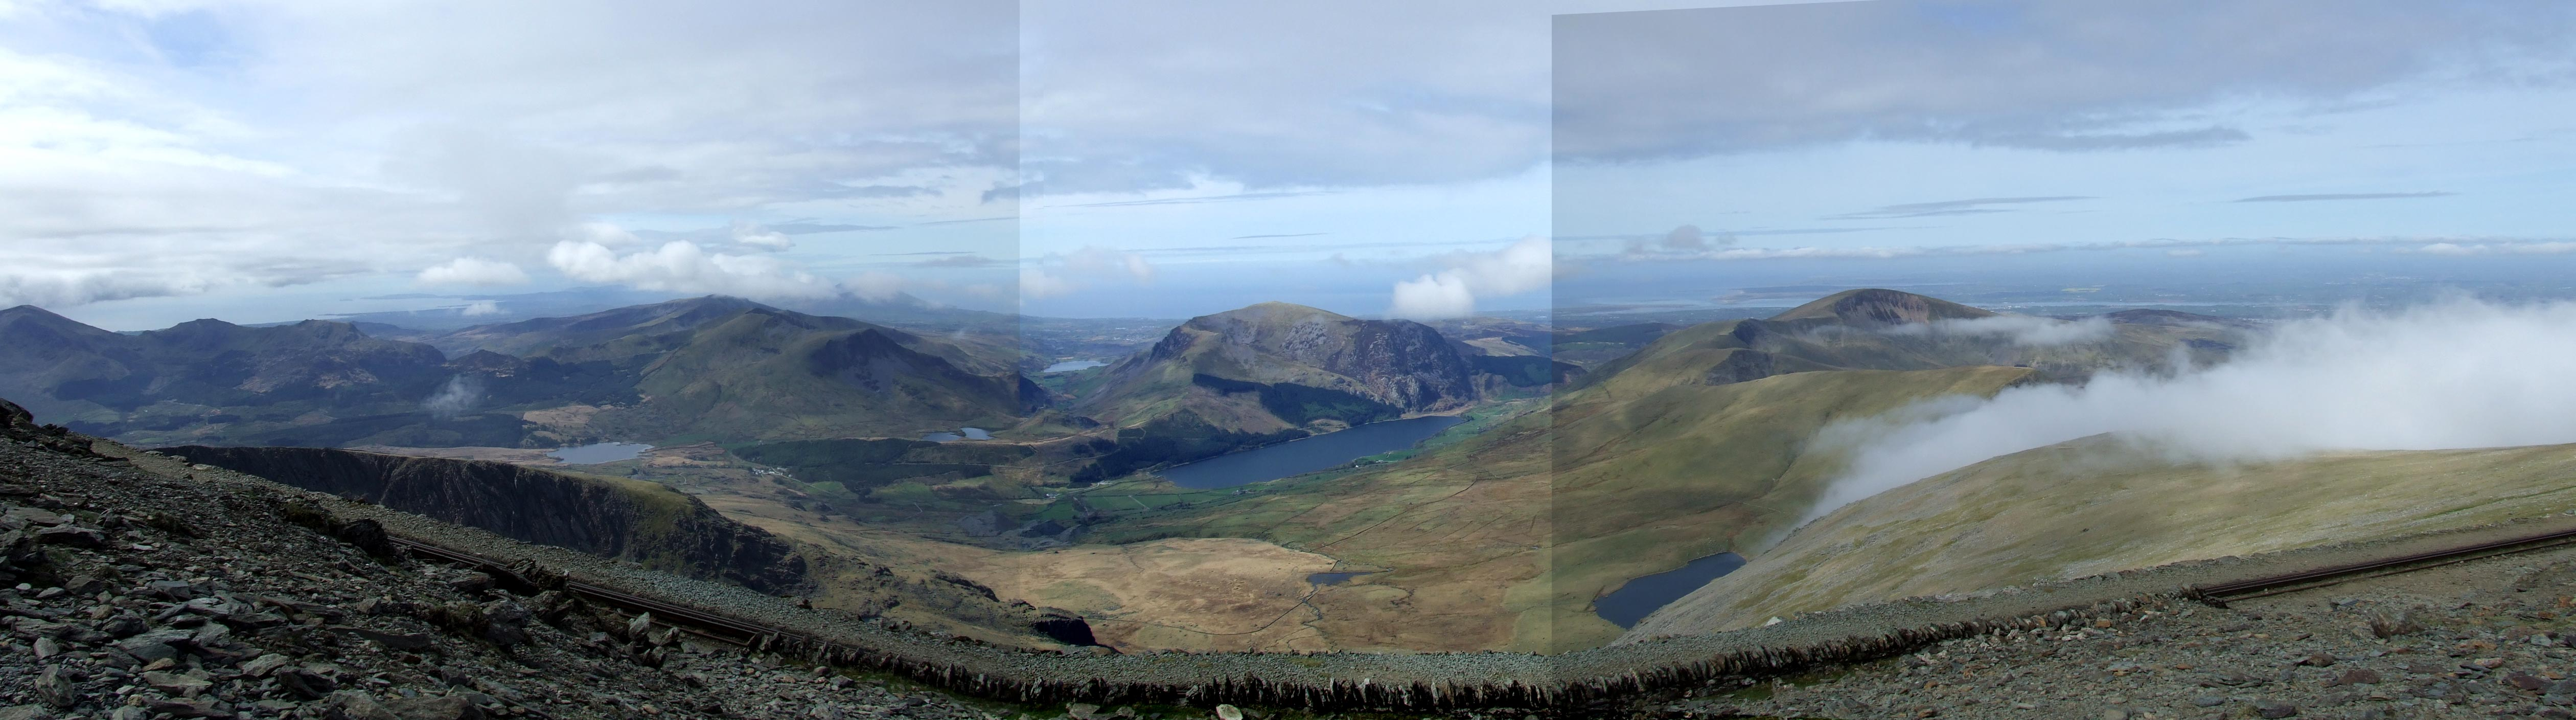 Snowdon panorama - looking South West to North West